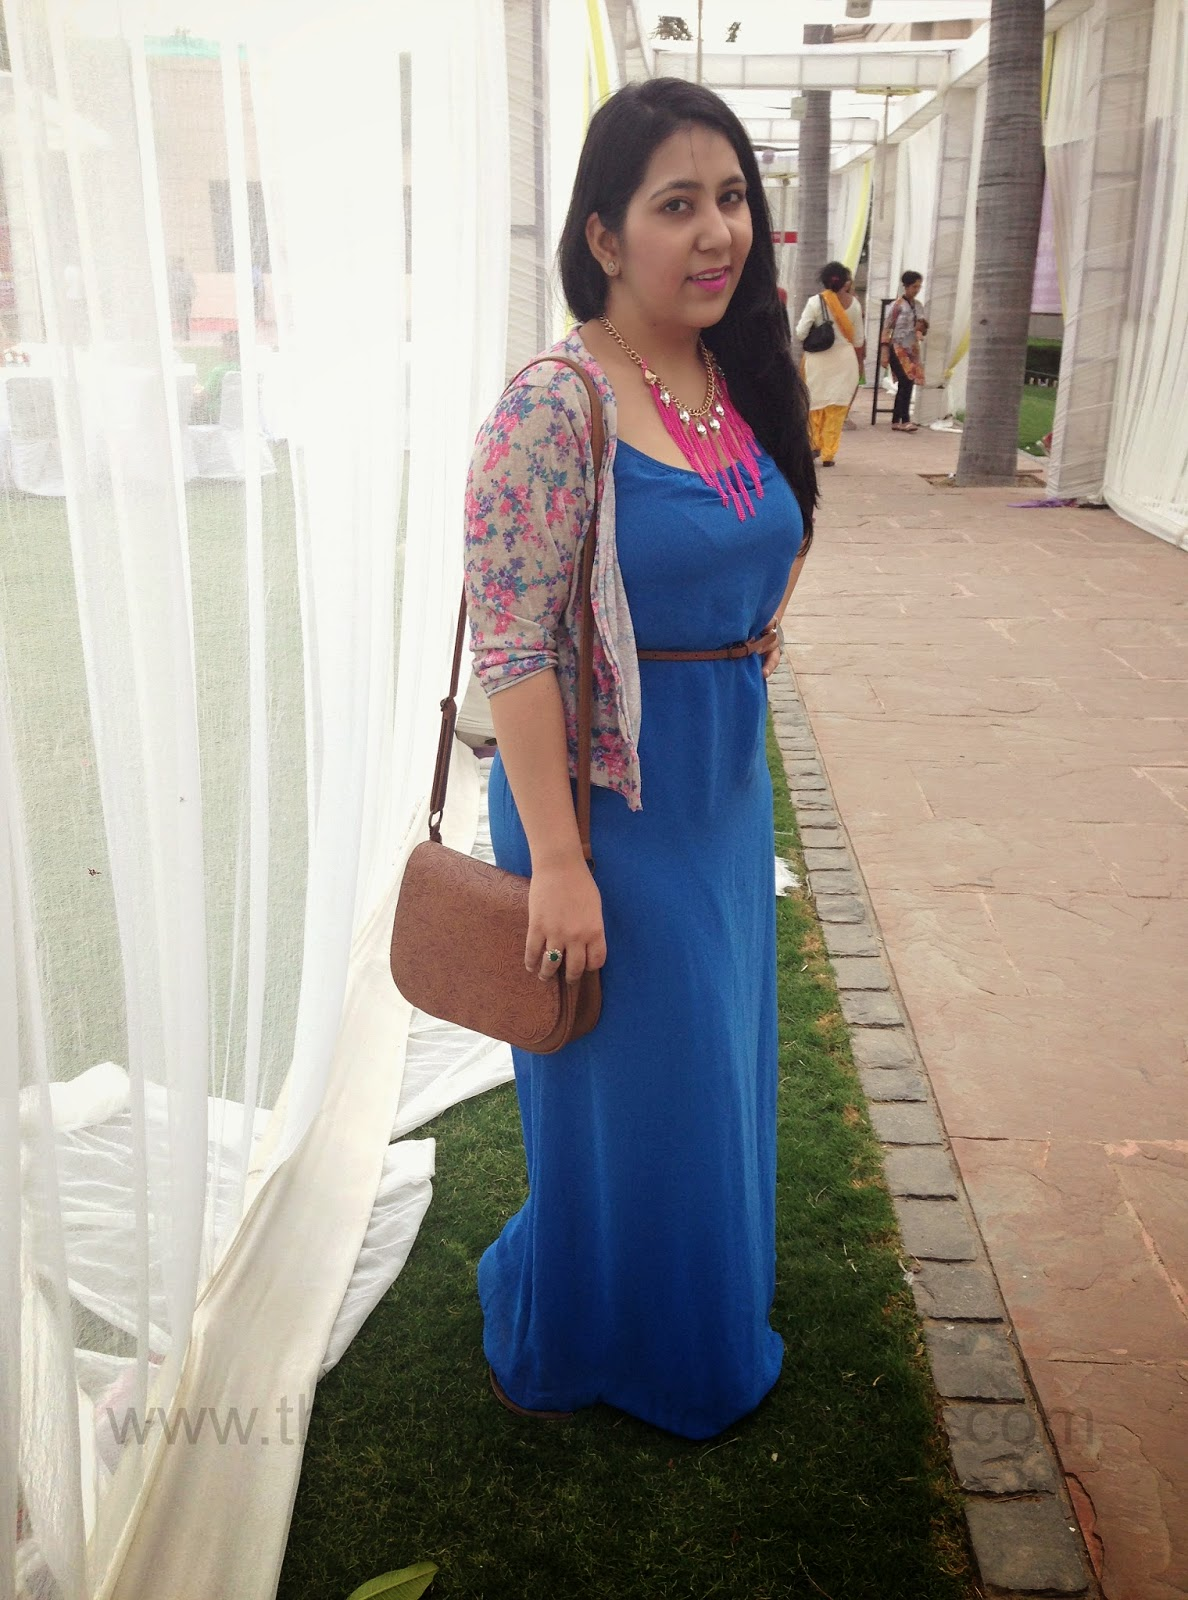 Ootd Going Maxi On A Breezy Day Maxi Dress And Floral Shrug